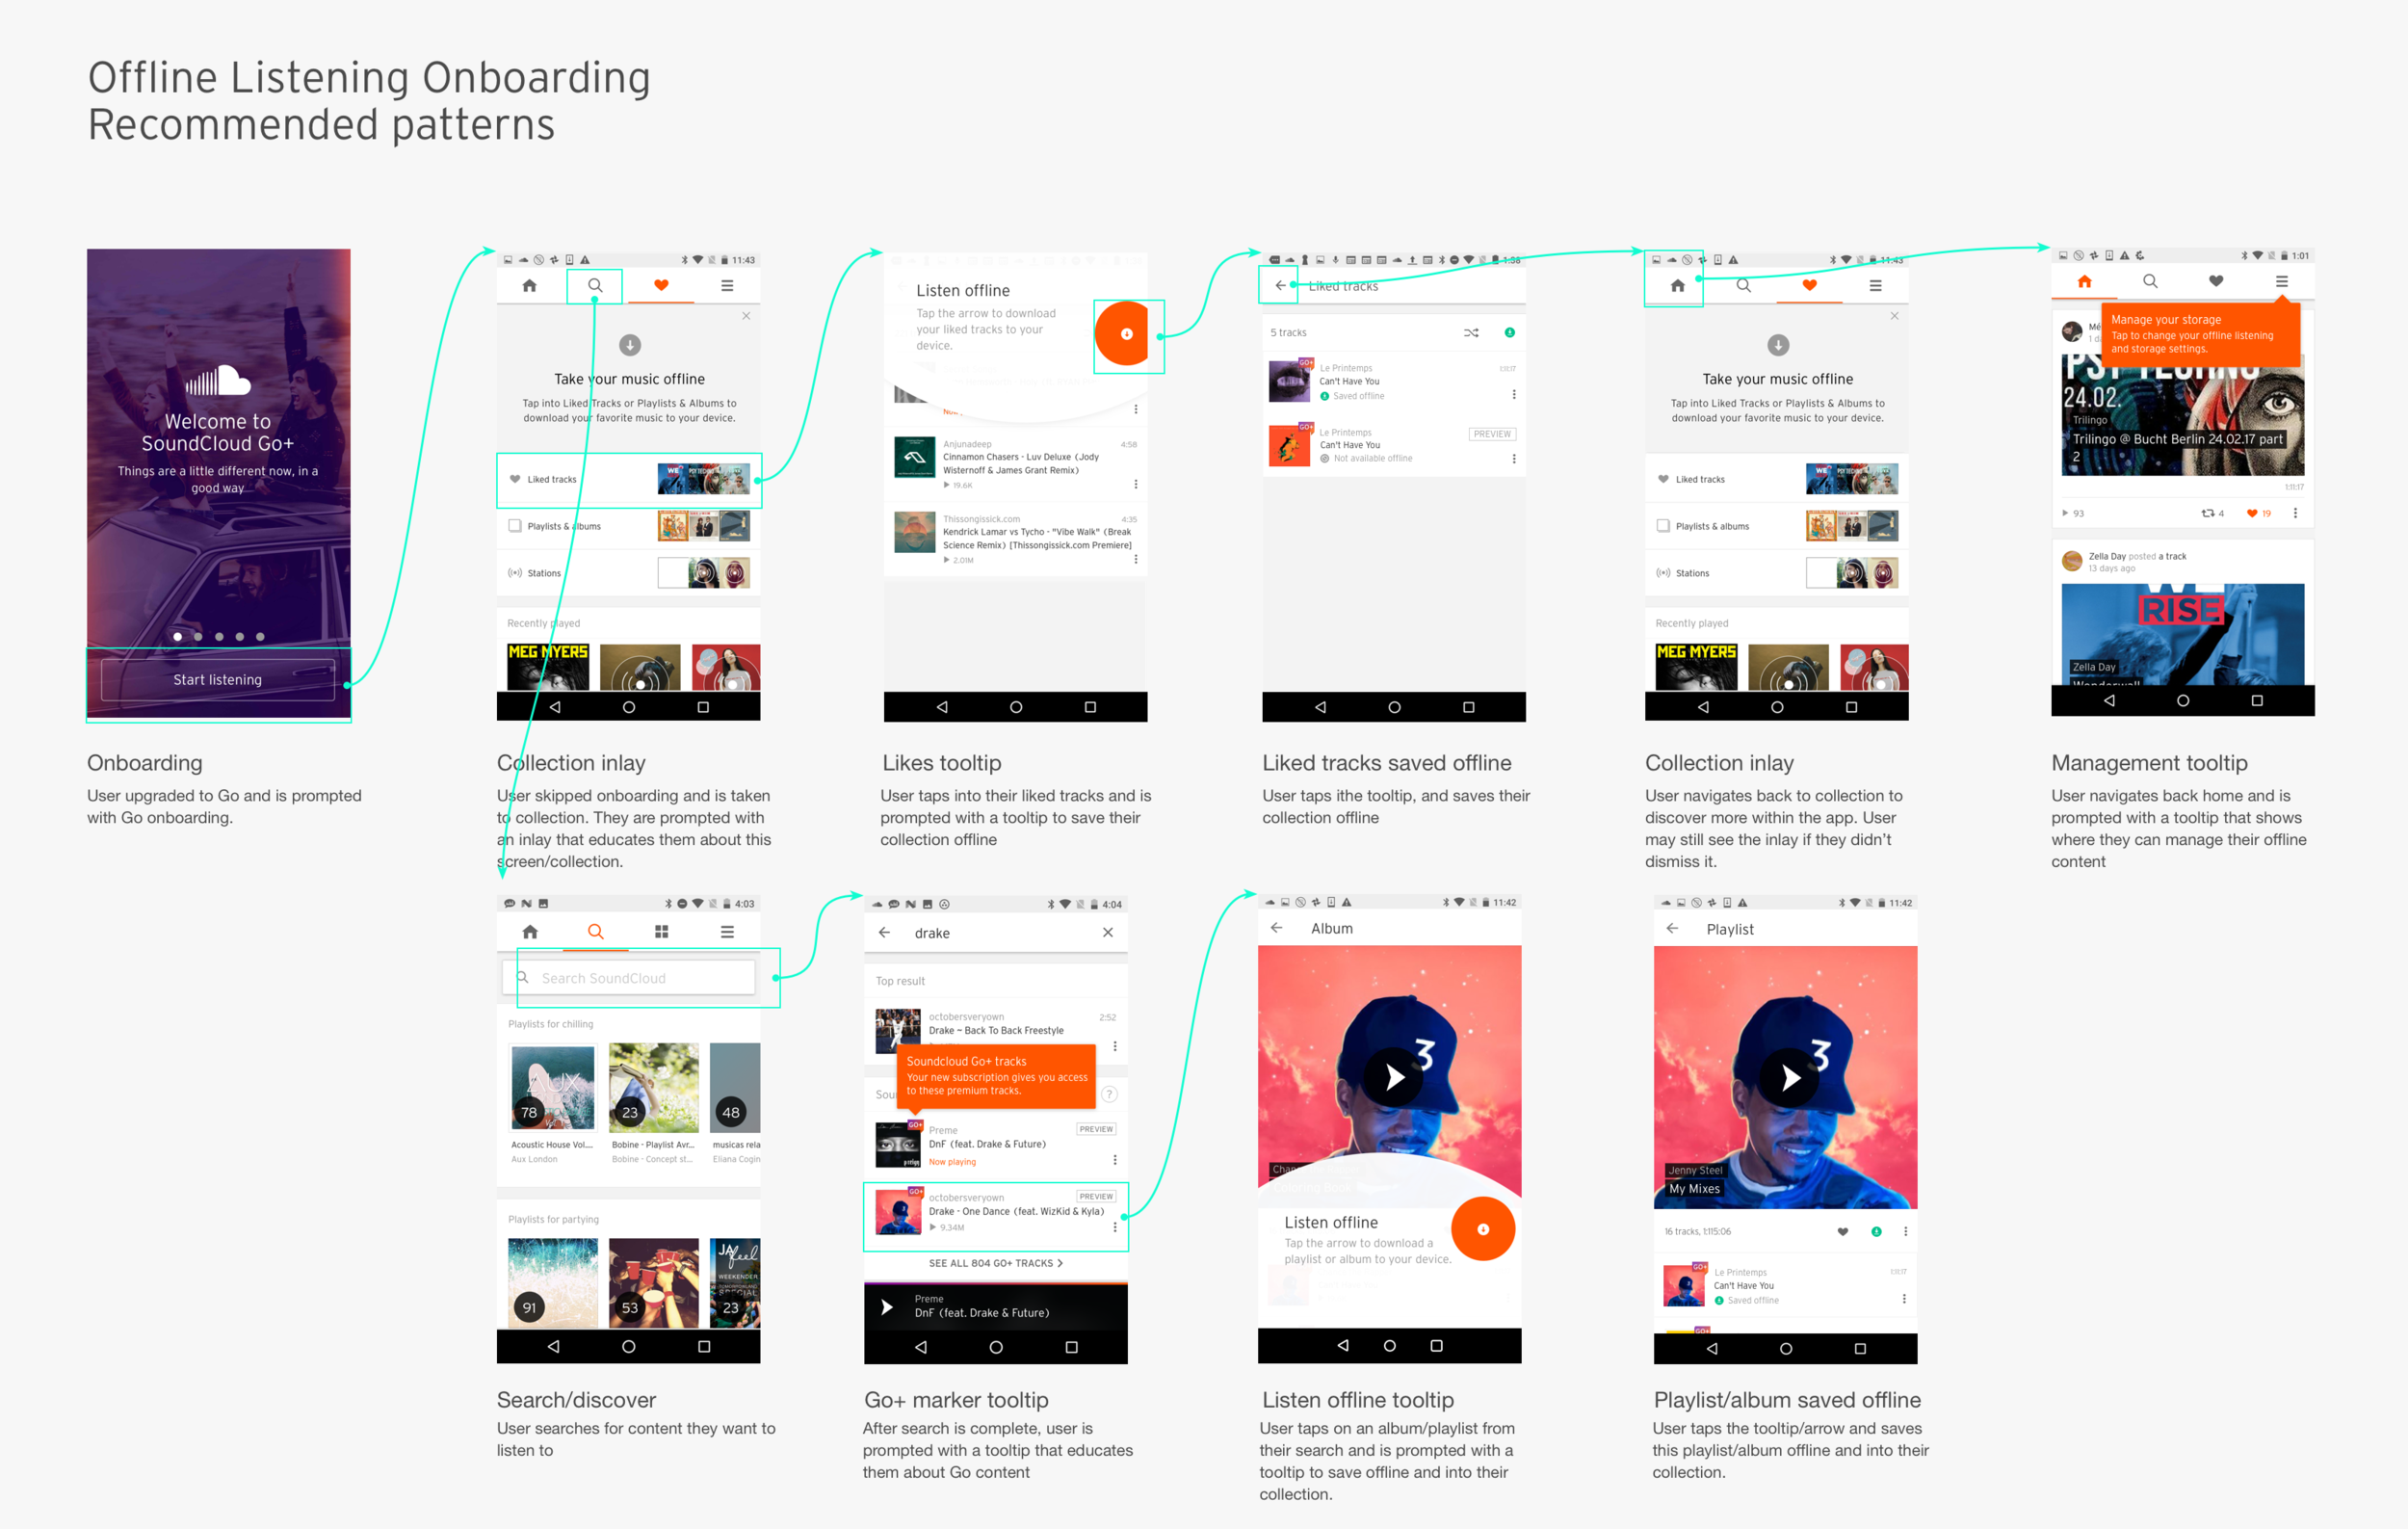 Recommended feature onboarding logic for saving offline